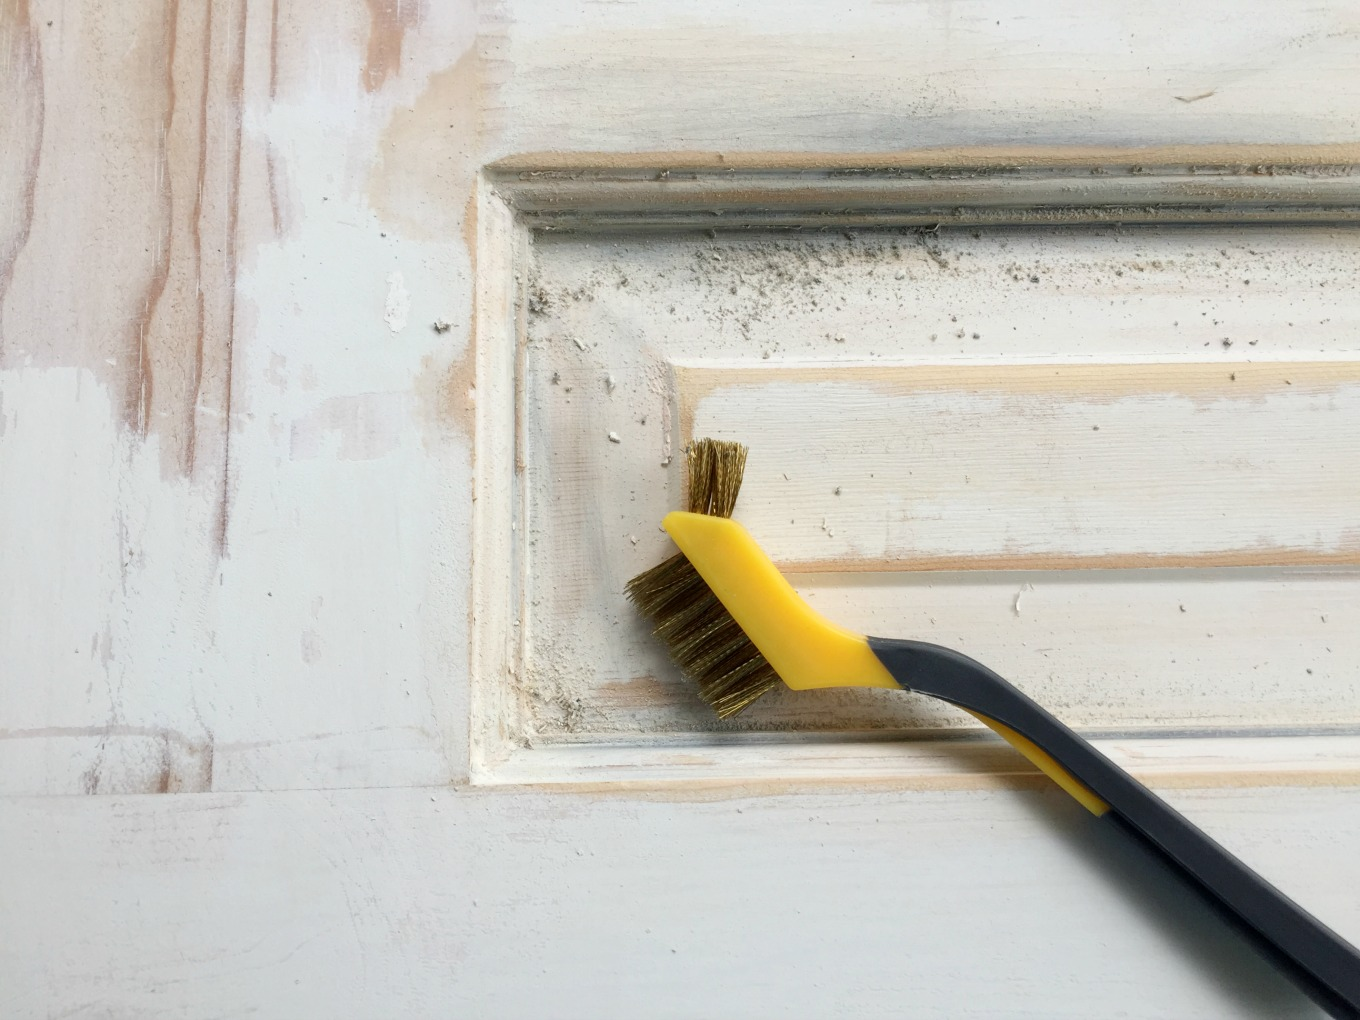 How to strip paint from wood doors - thediybungalow.com